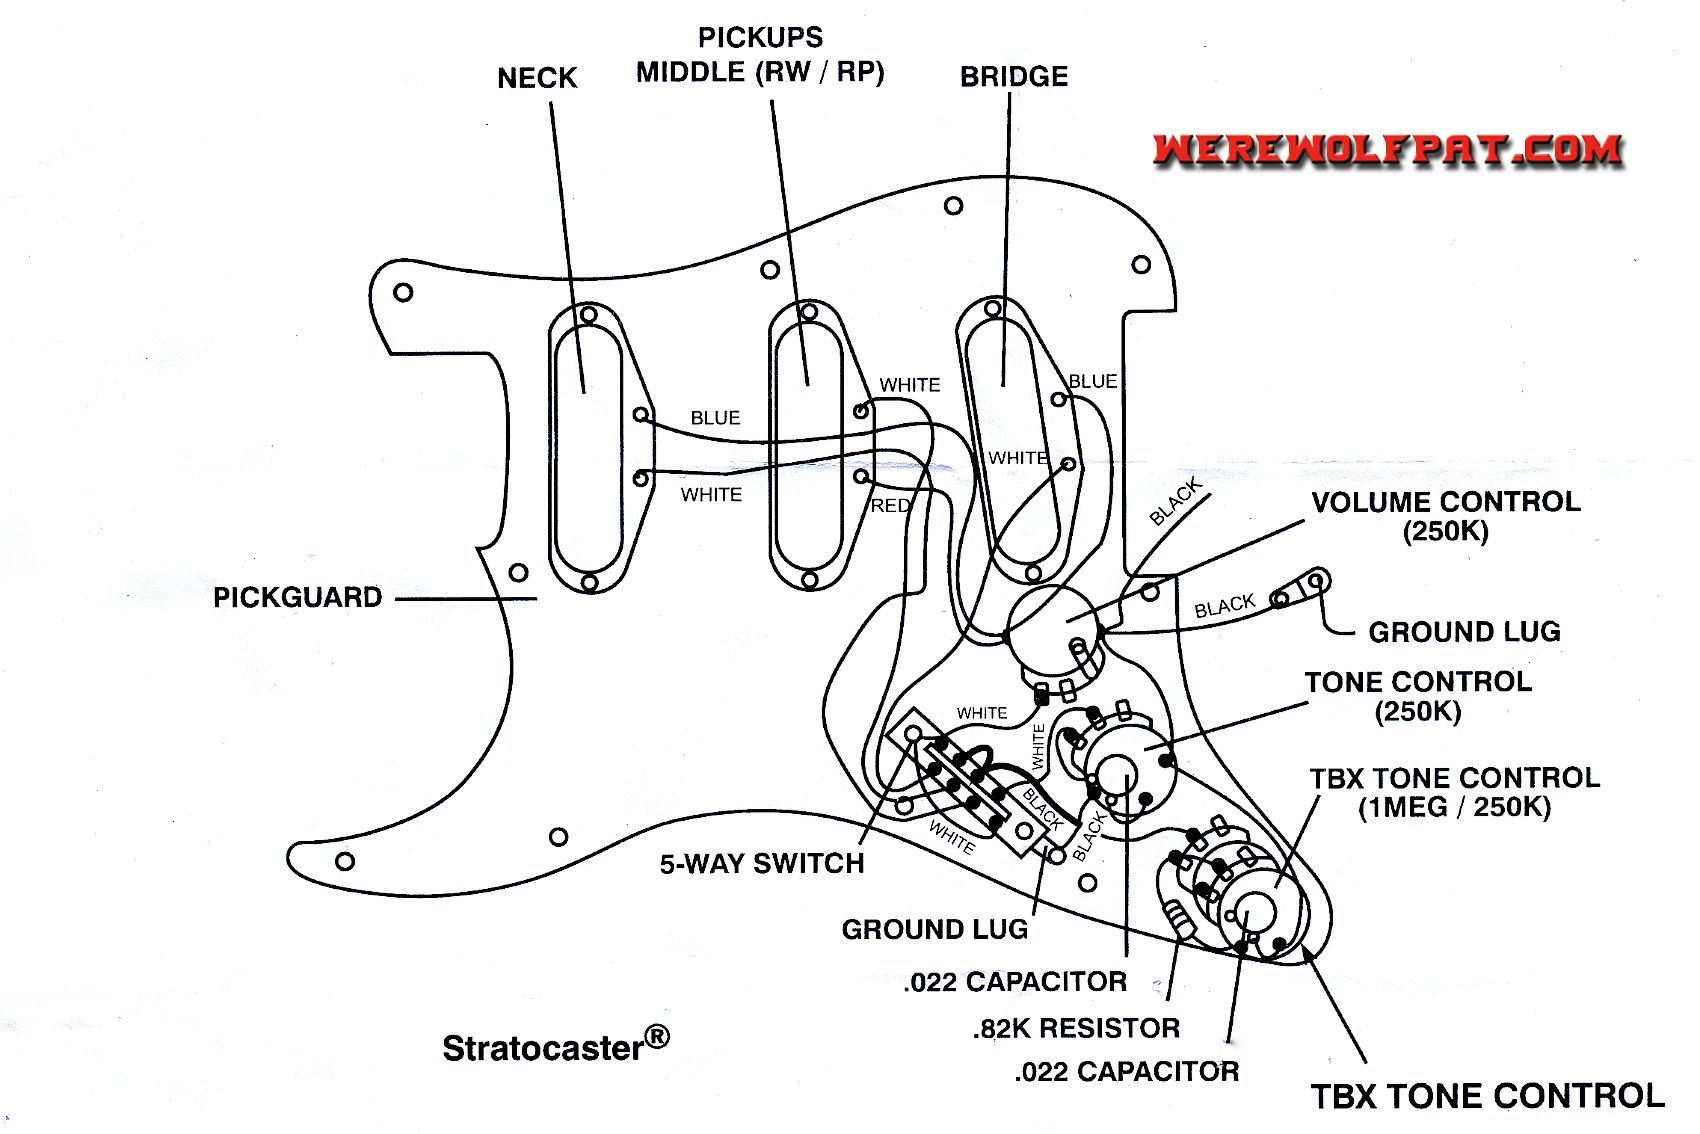 Wiring Diagram. Electric Guitar Wiring Diagrams and Schematics: Guitar Pots  In Pictures! ~